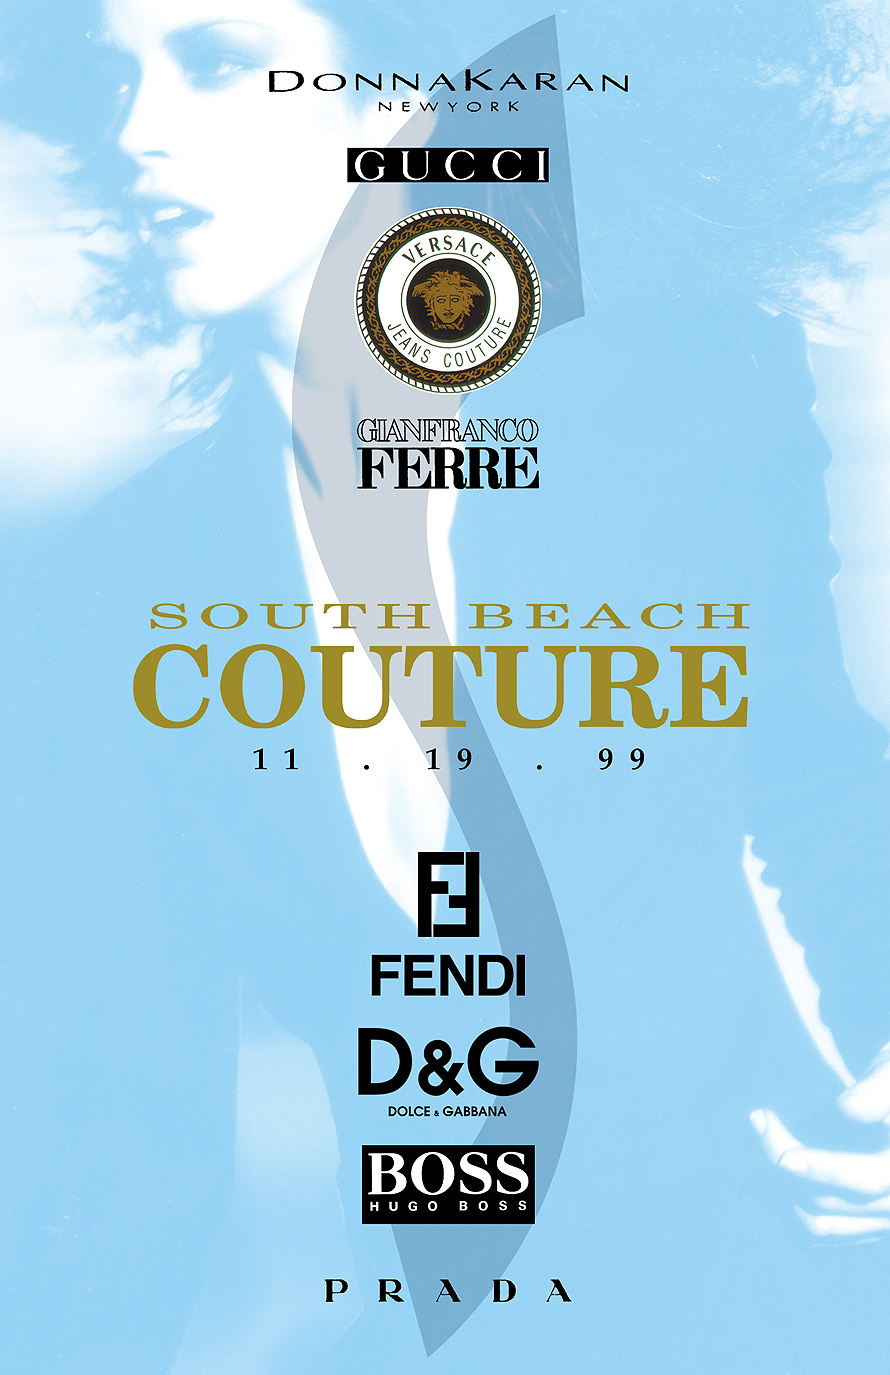 South Beach Couture Fashion Show at Shadow Lounge